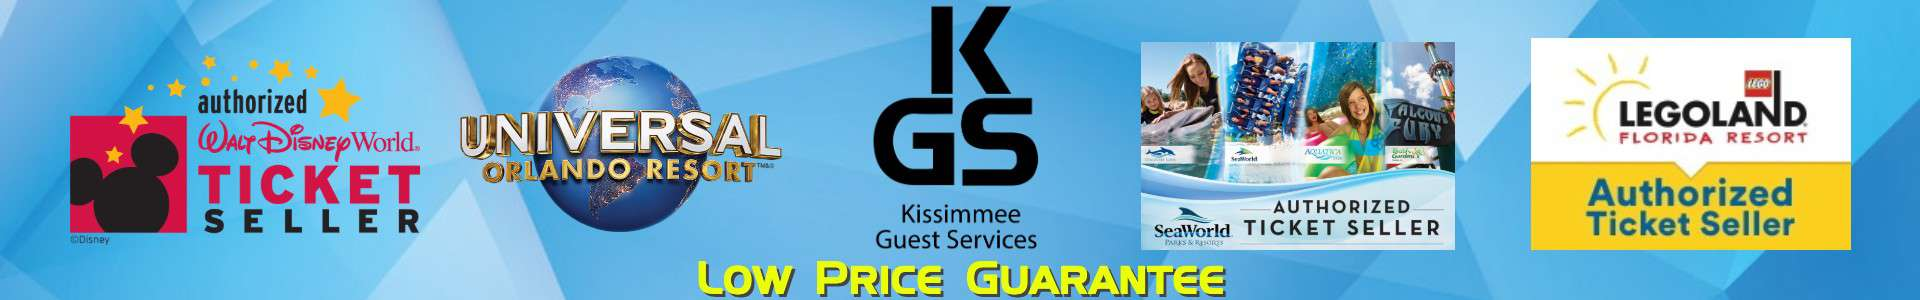 KGS - Discount Attraction Tickets Orlando